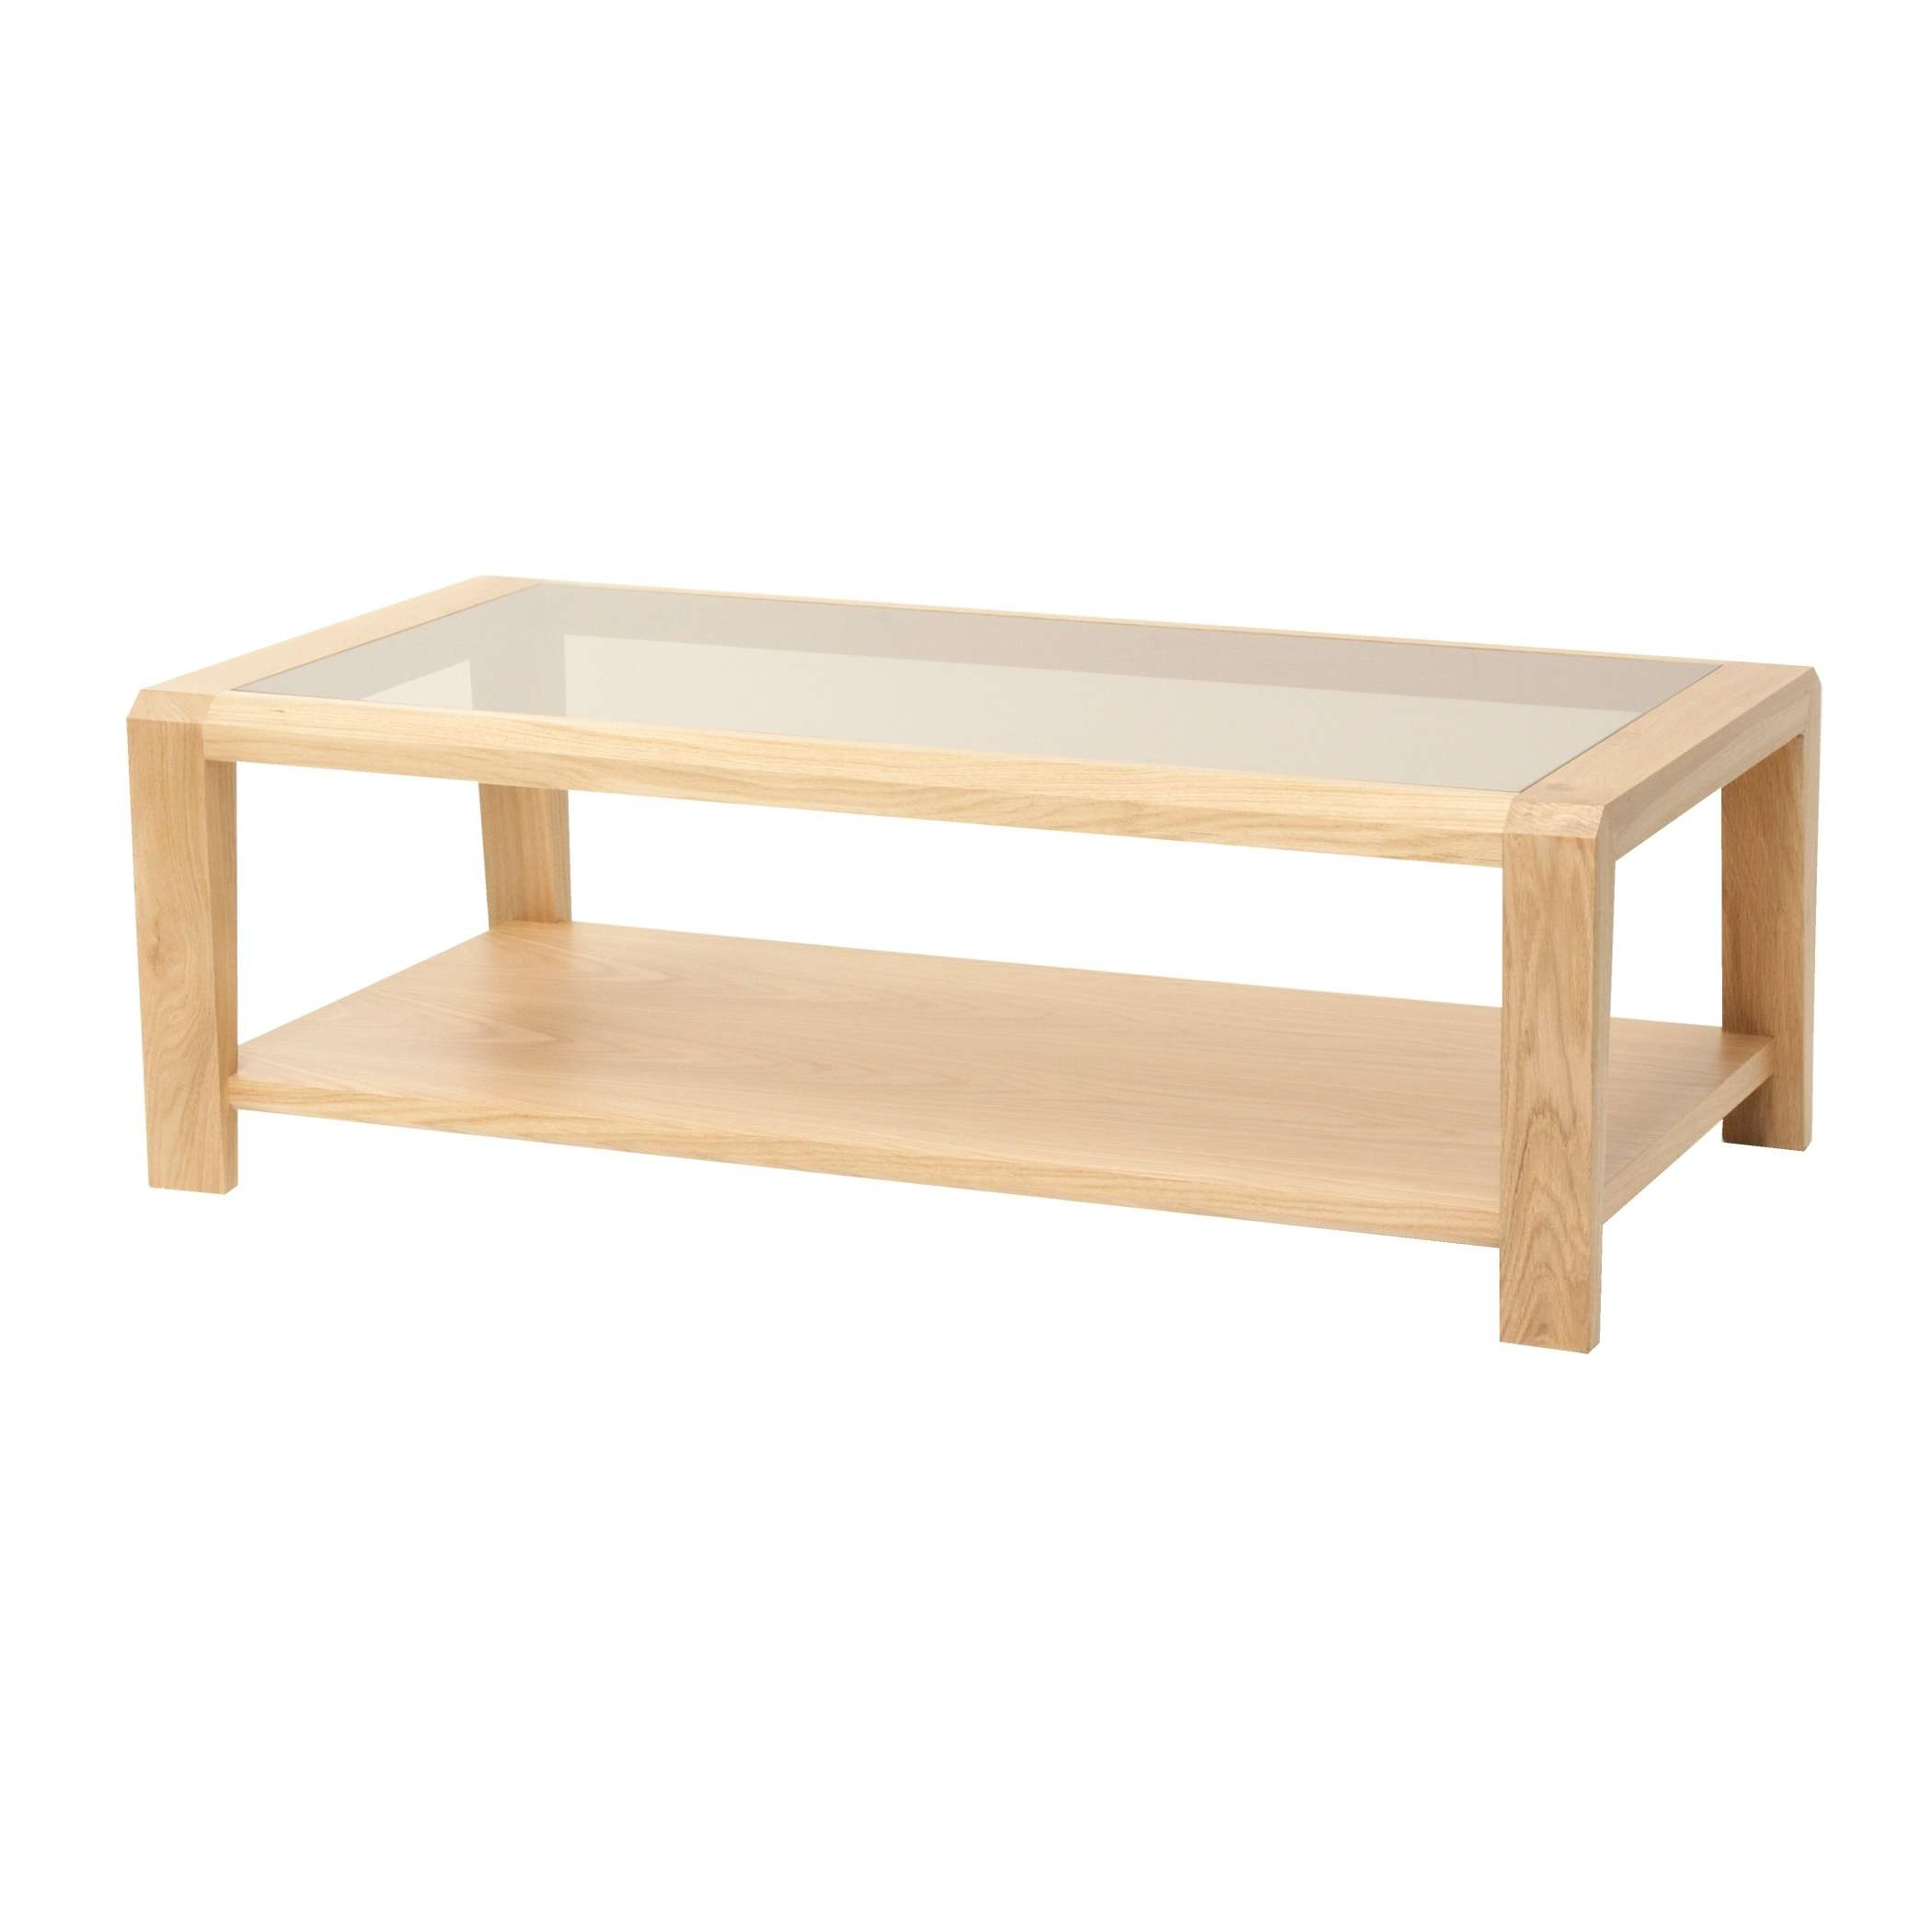 Gola Furniture Uk Within Newest Oak Coffee Tables With Shelf (View 8 of 20)